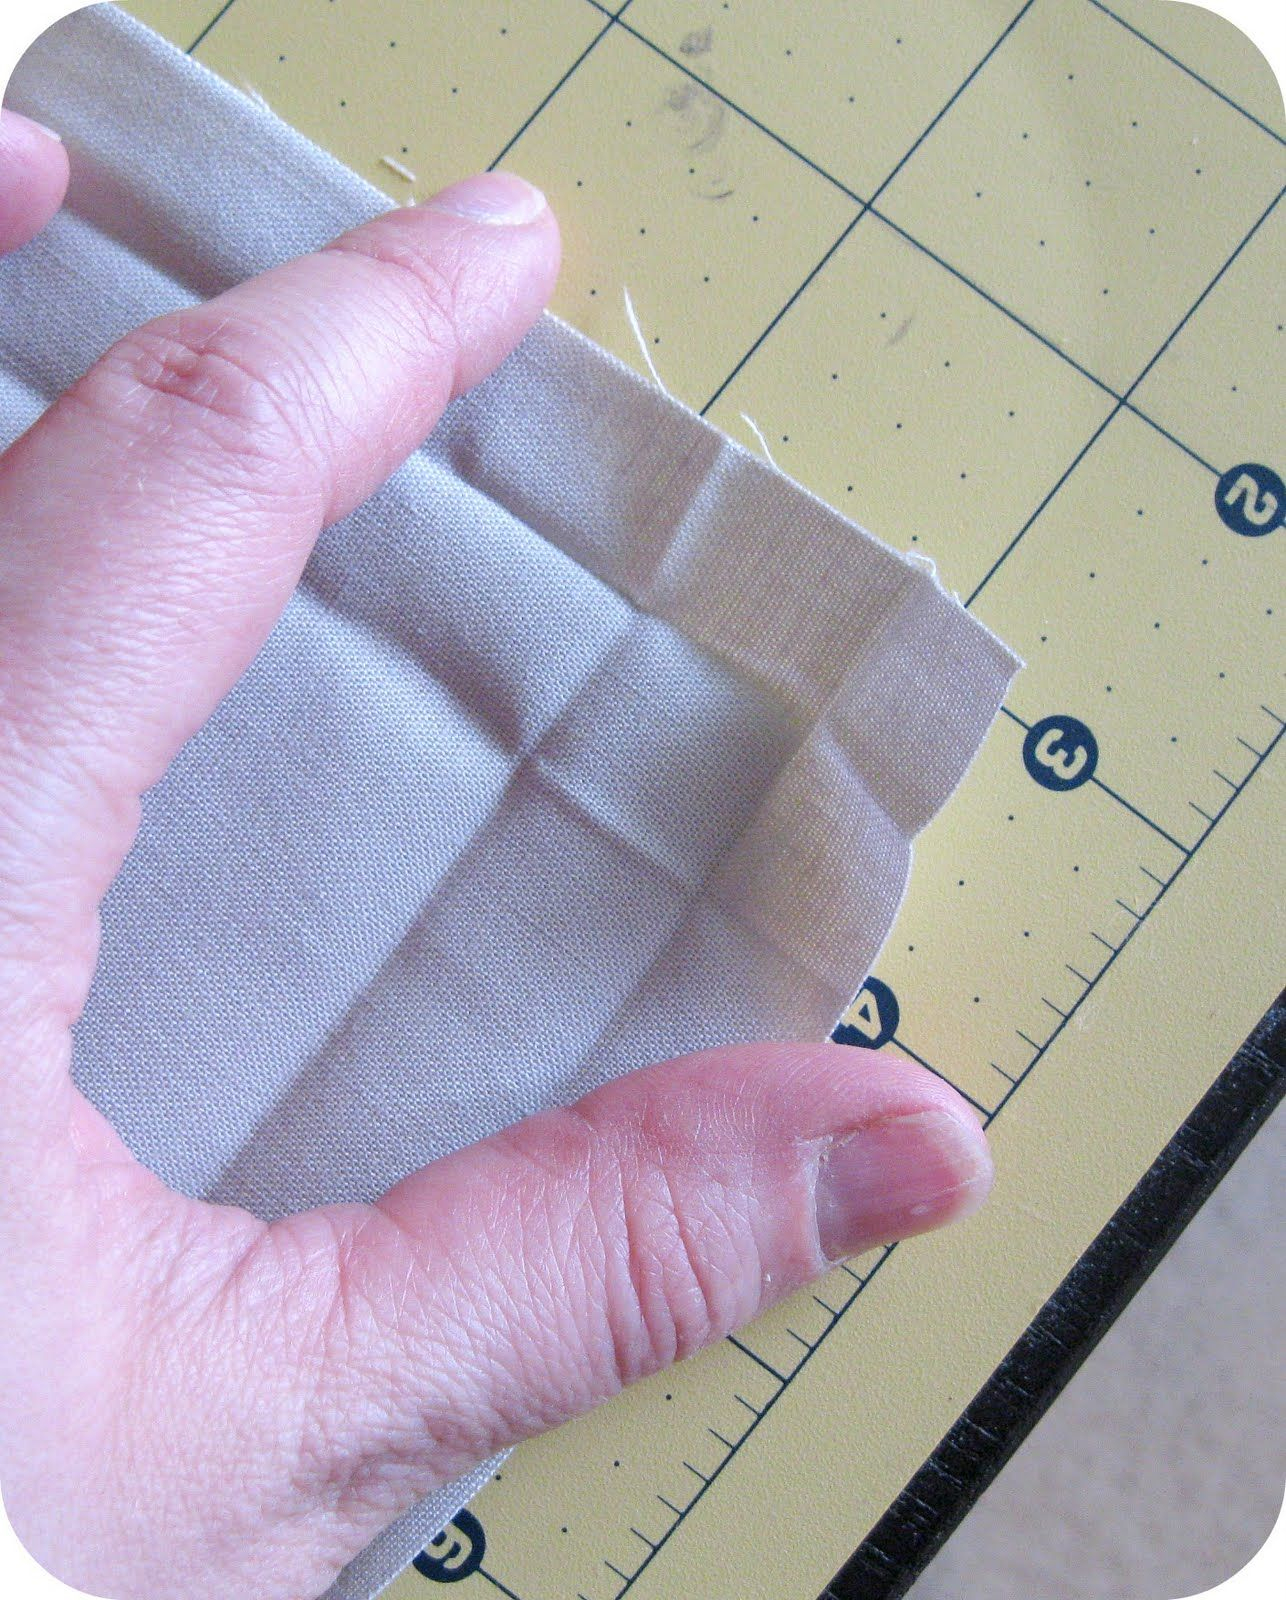 How To Sew A Mitred Corner Without A Trim In Crafts Forum